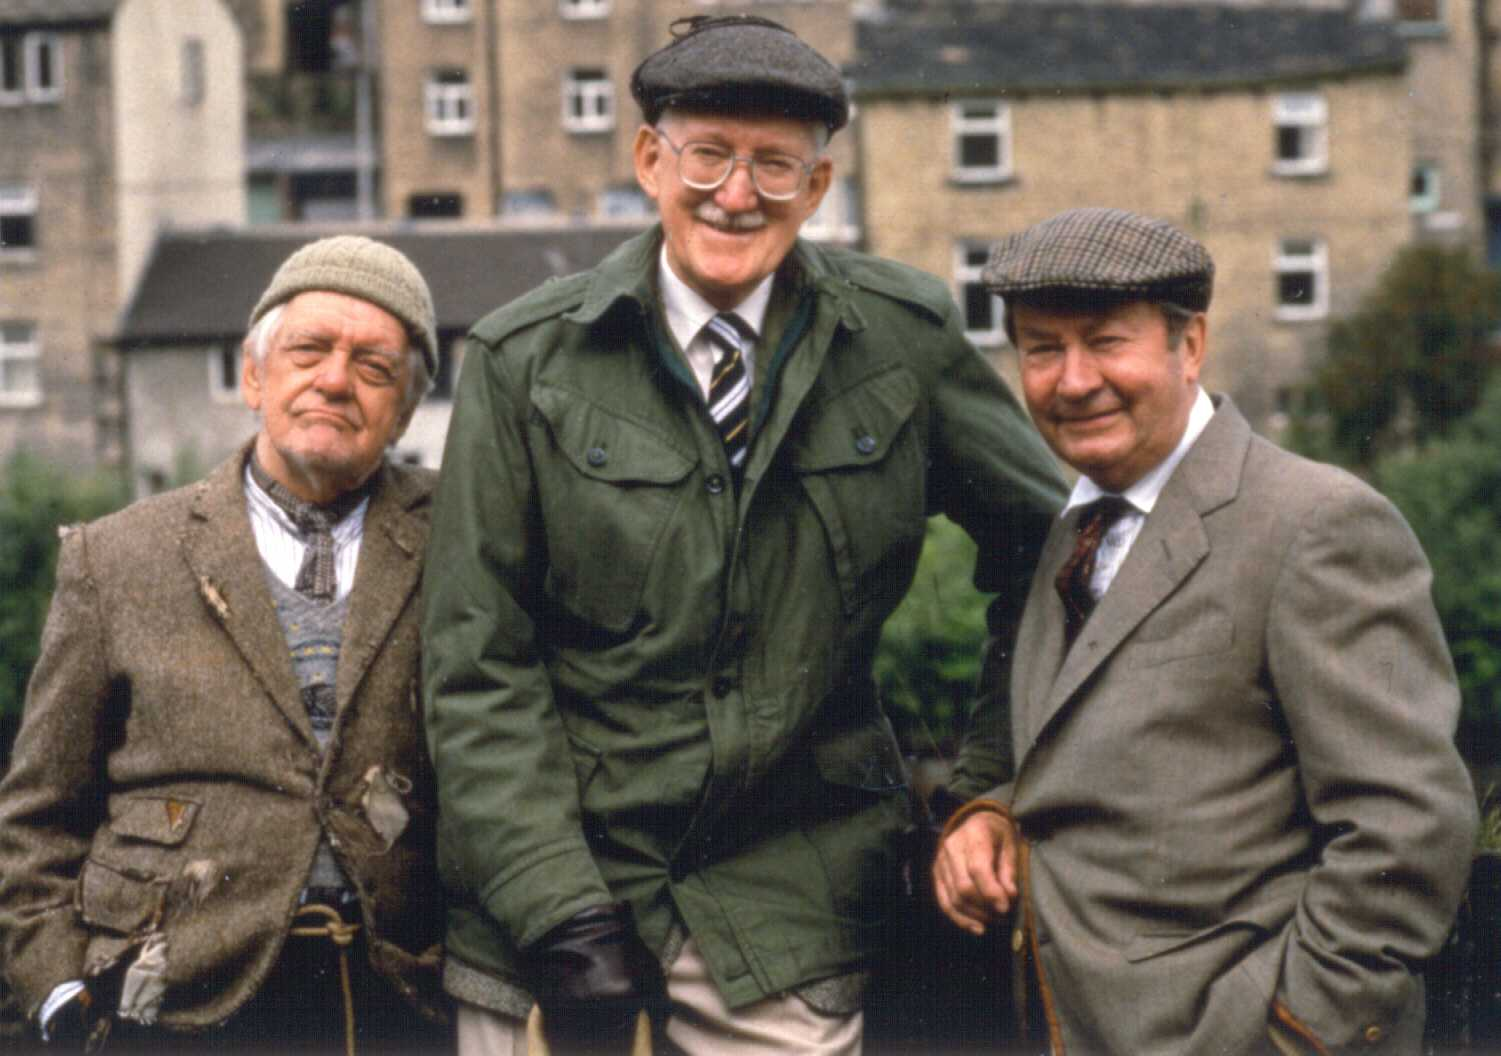 A photo of Compo, Cleggy and Foggy from Last of the Summer Wine